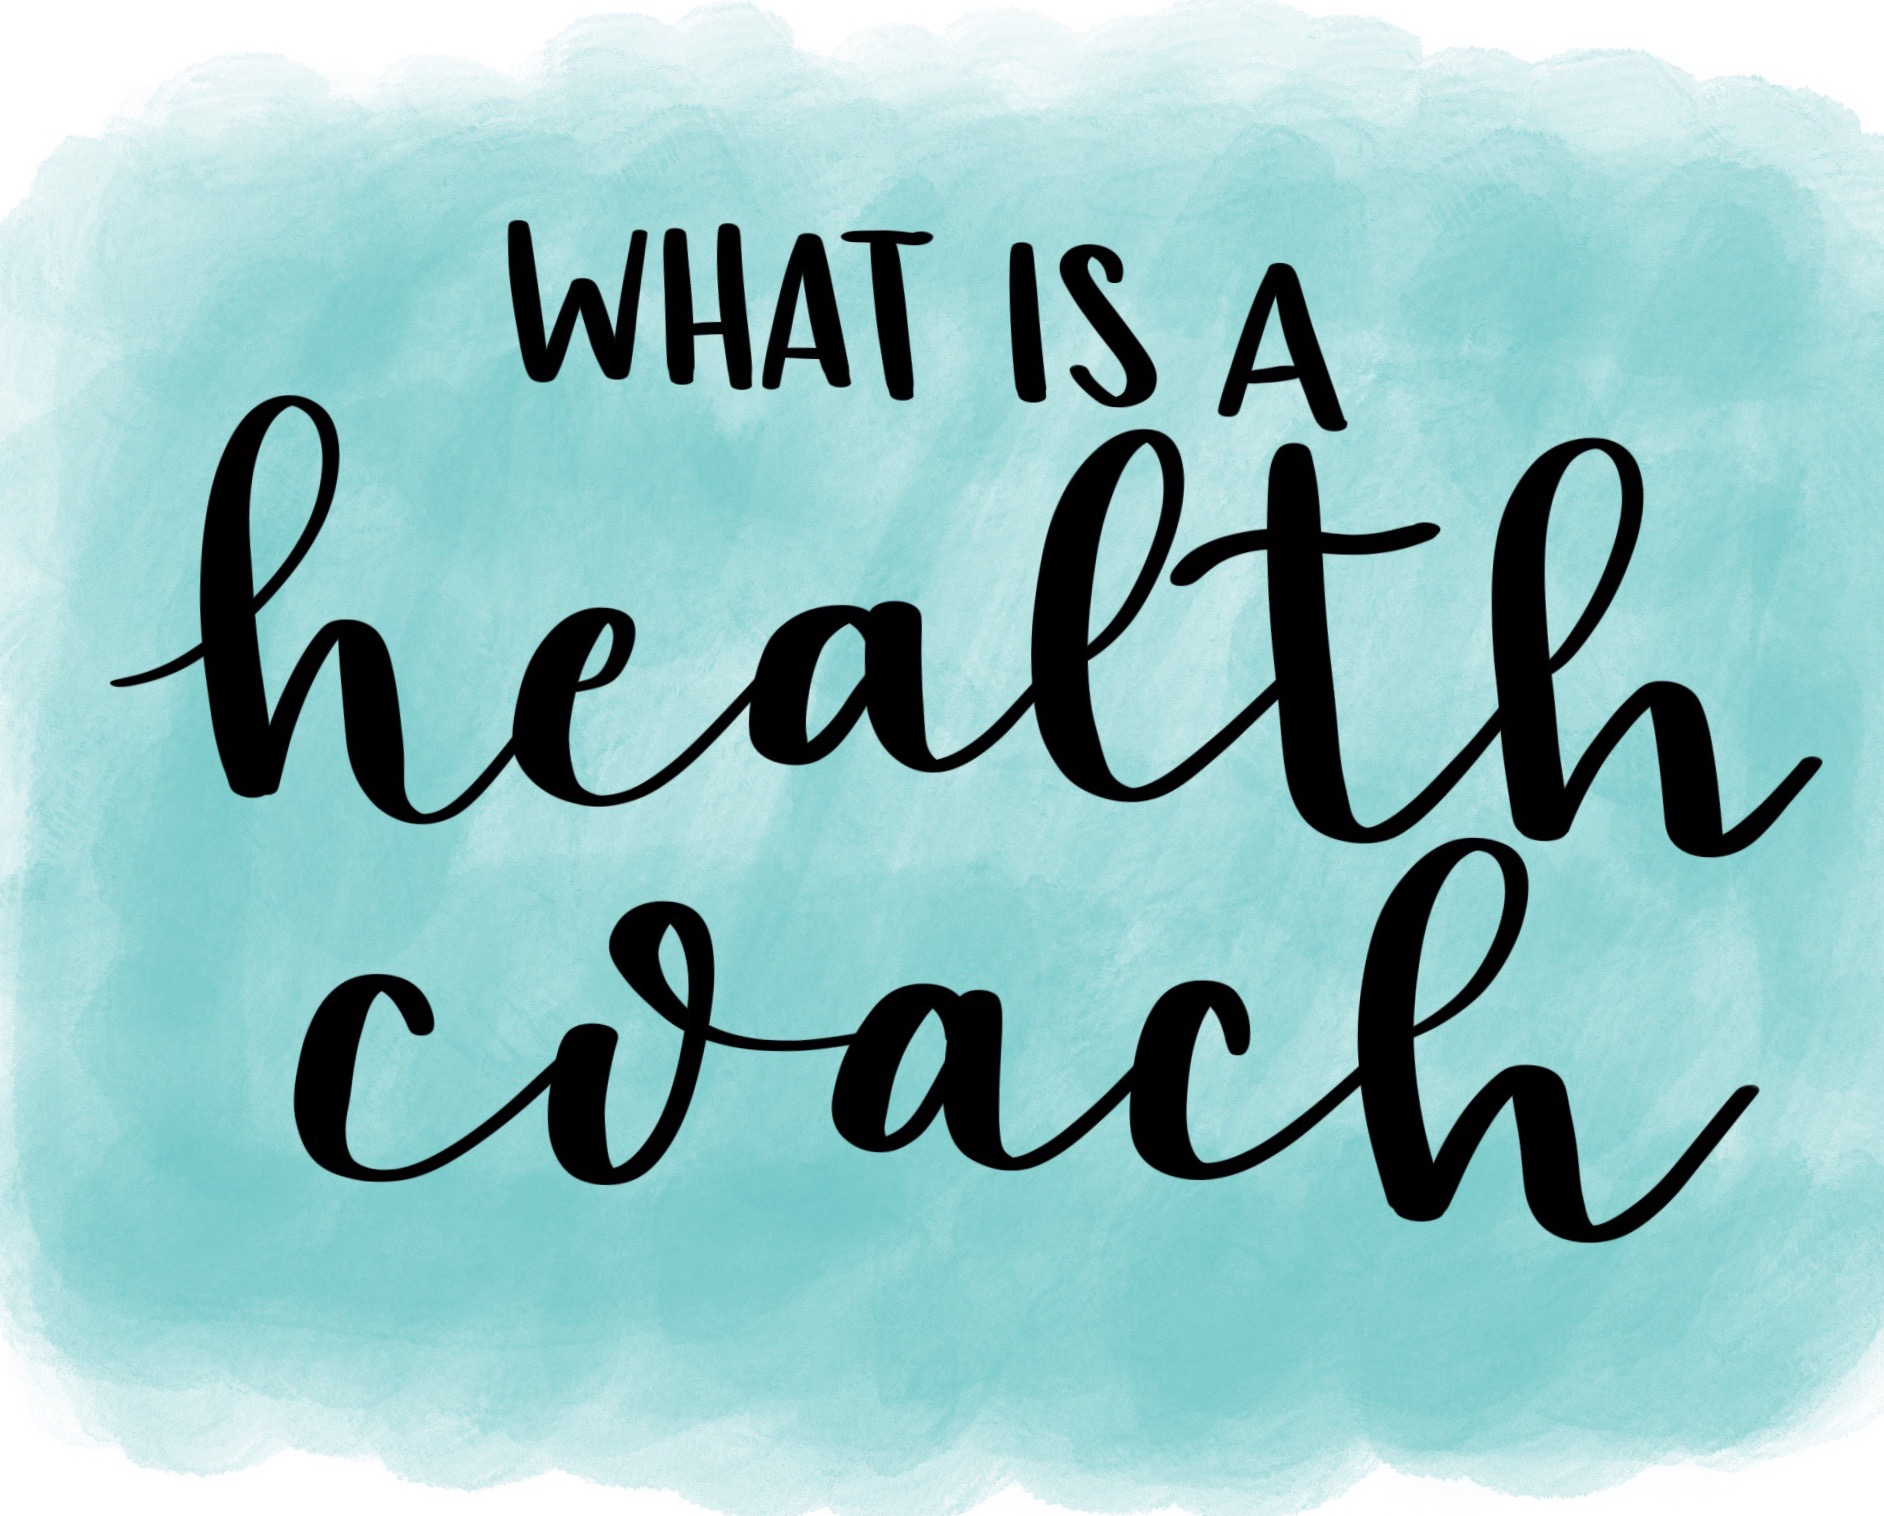 Holistic Health Coach >> Introducing Holistic Health Coaching With Larissa